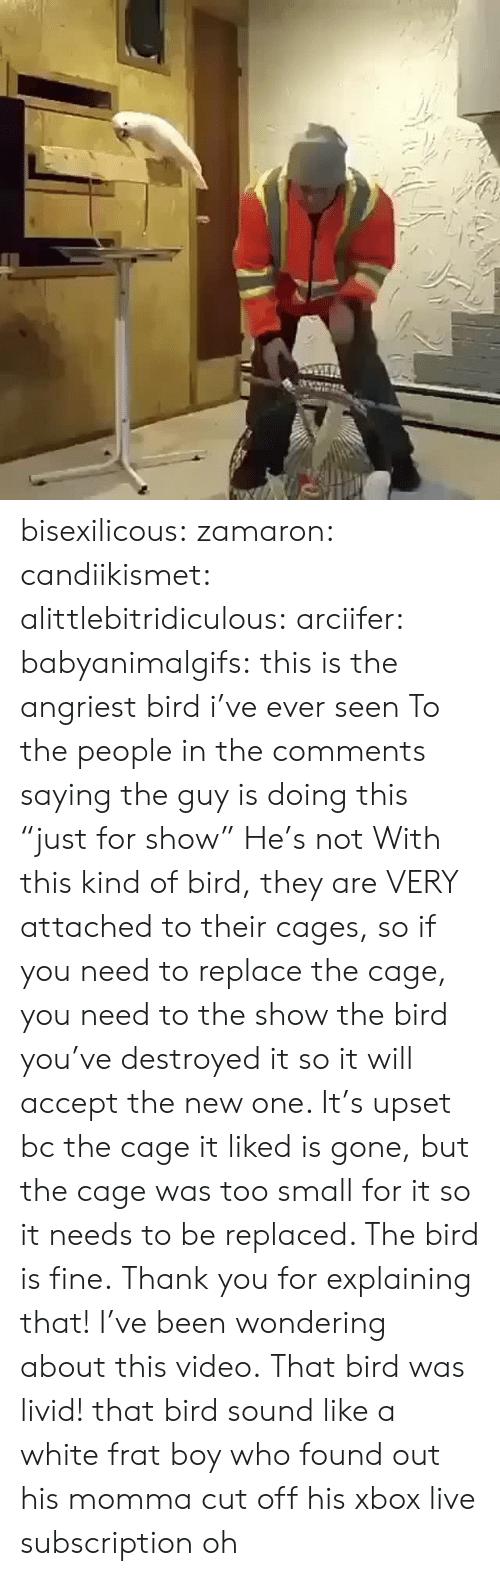 """Angriest: bisexilicous: zamaron:  candiikismet:  alittlebitridiculous:   arciifer:  babyanimalgifs:  this is the angriest bird i've ever seen  To the people in the comments saying the guy is doing this """"just for show"""" He's not With this kind of bird, they are VERY attached to their cages, so if you need to replace the cage, you need to the show the bird you've destroyed it so it will accept the new one. It's upset bc the cage it liked is gone, but the cage was too small for it so it needs to be replaced. The bird is fine.   Thank you for explaining that!  I've been wondering about this video.   That bird was livid!   that bird sound like a white frat boy who found out his momma cut off his xbox live subscription  oh"""